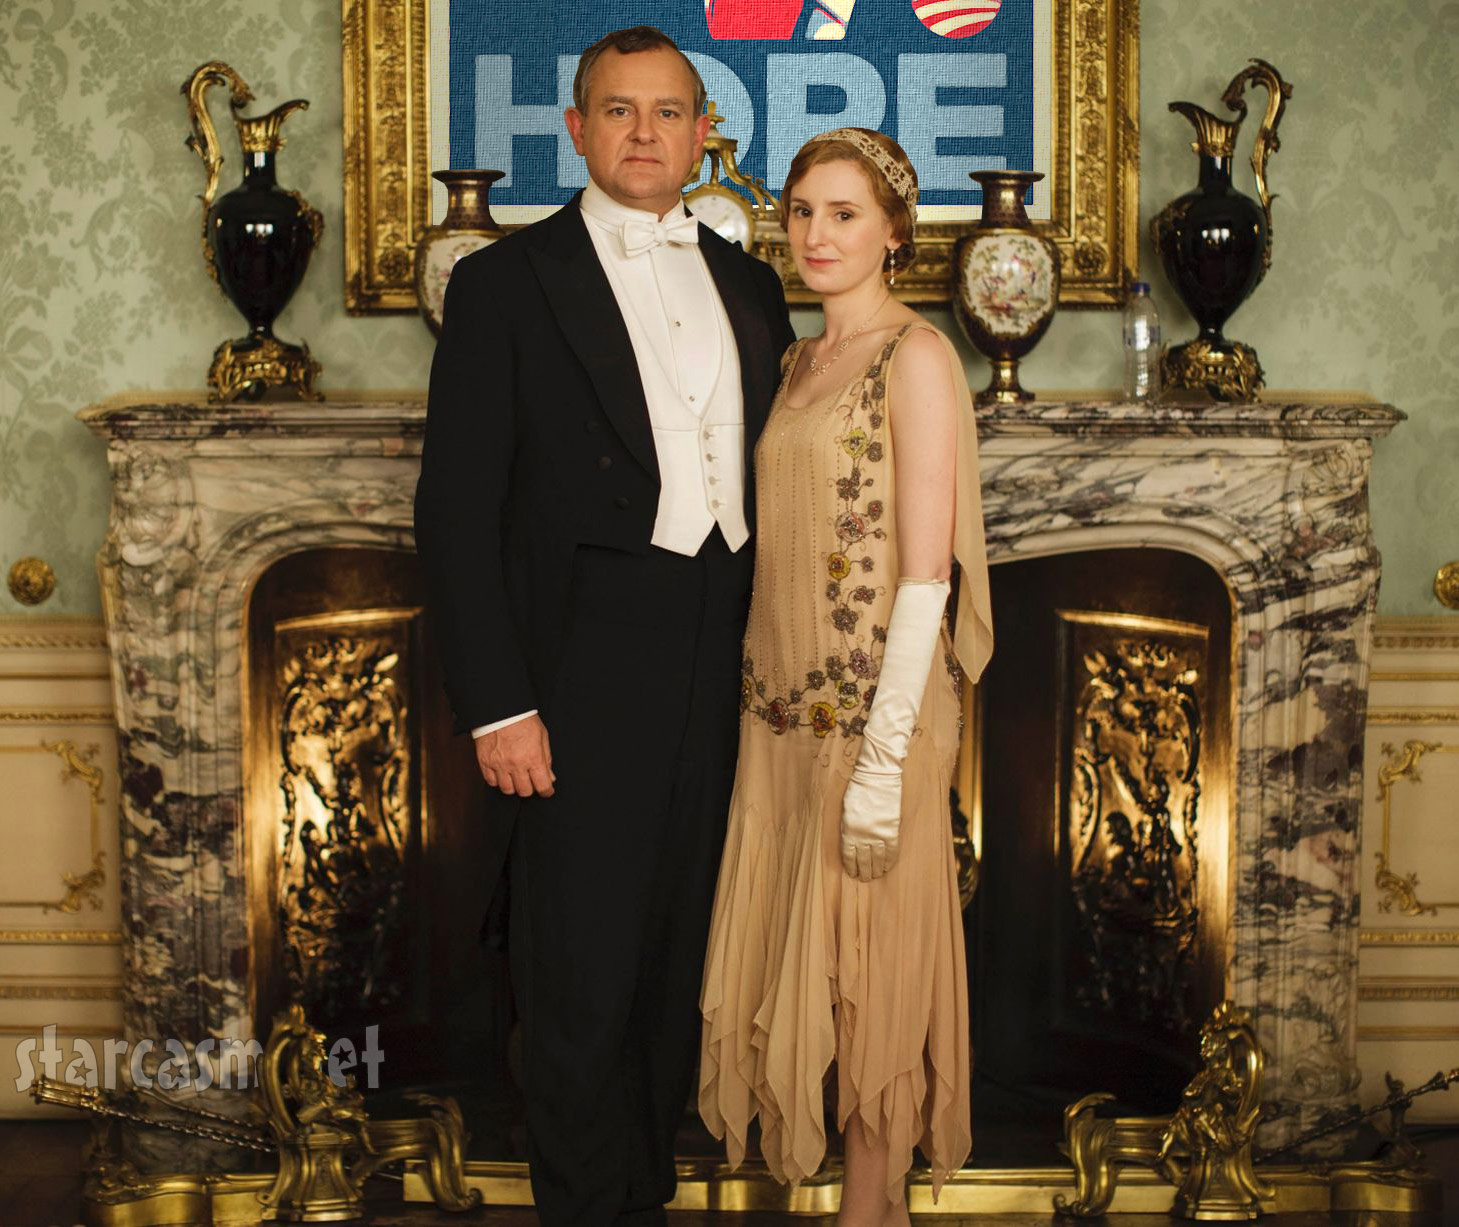 Downton Abbey Season 5 is scheduled to premiere in the US in January